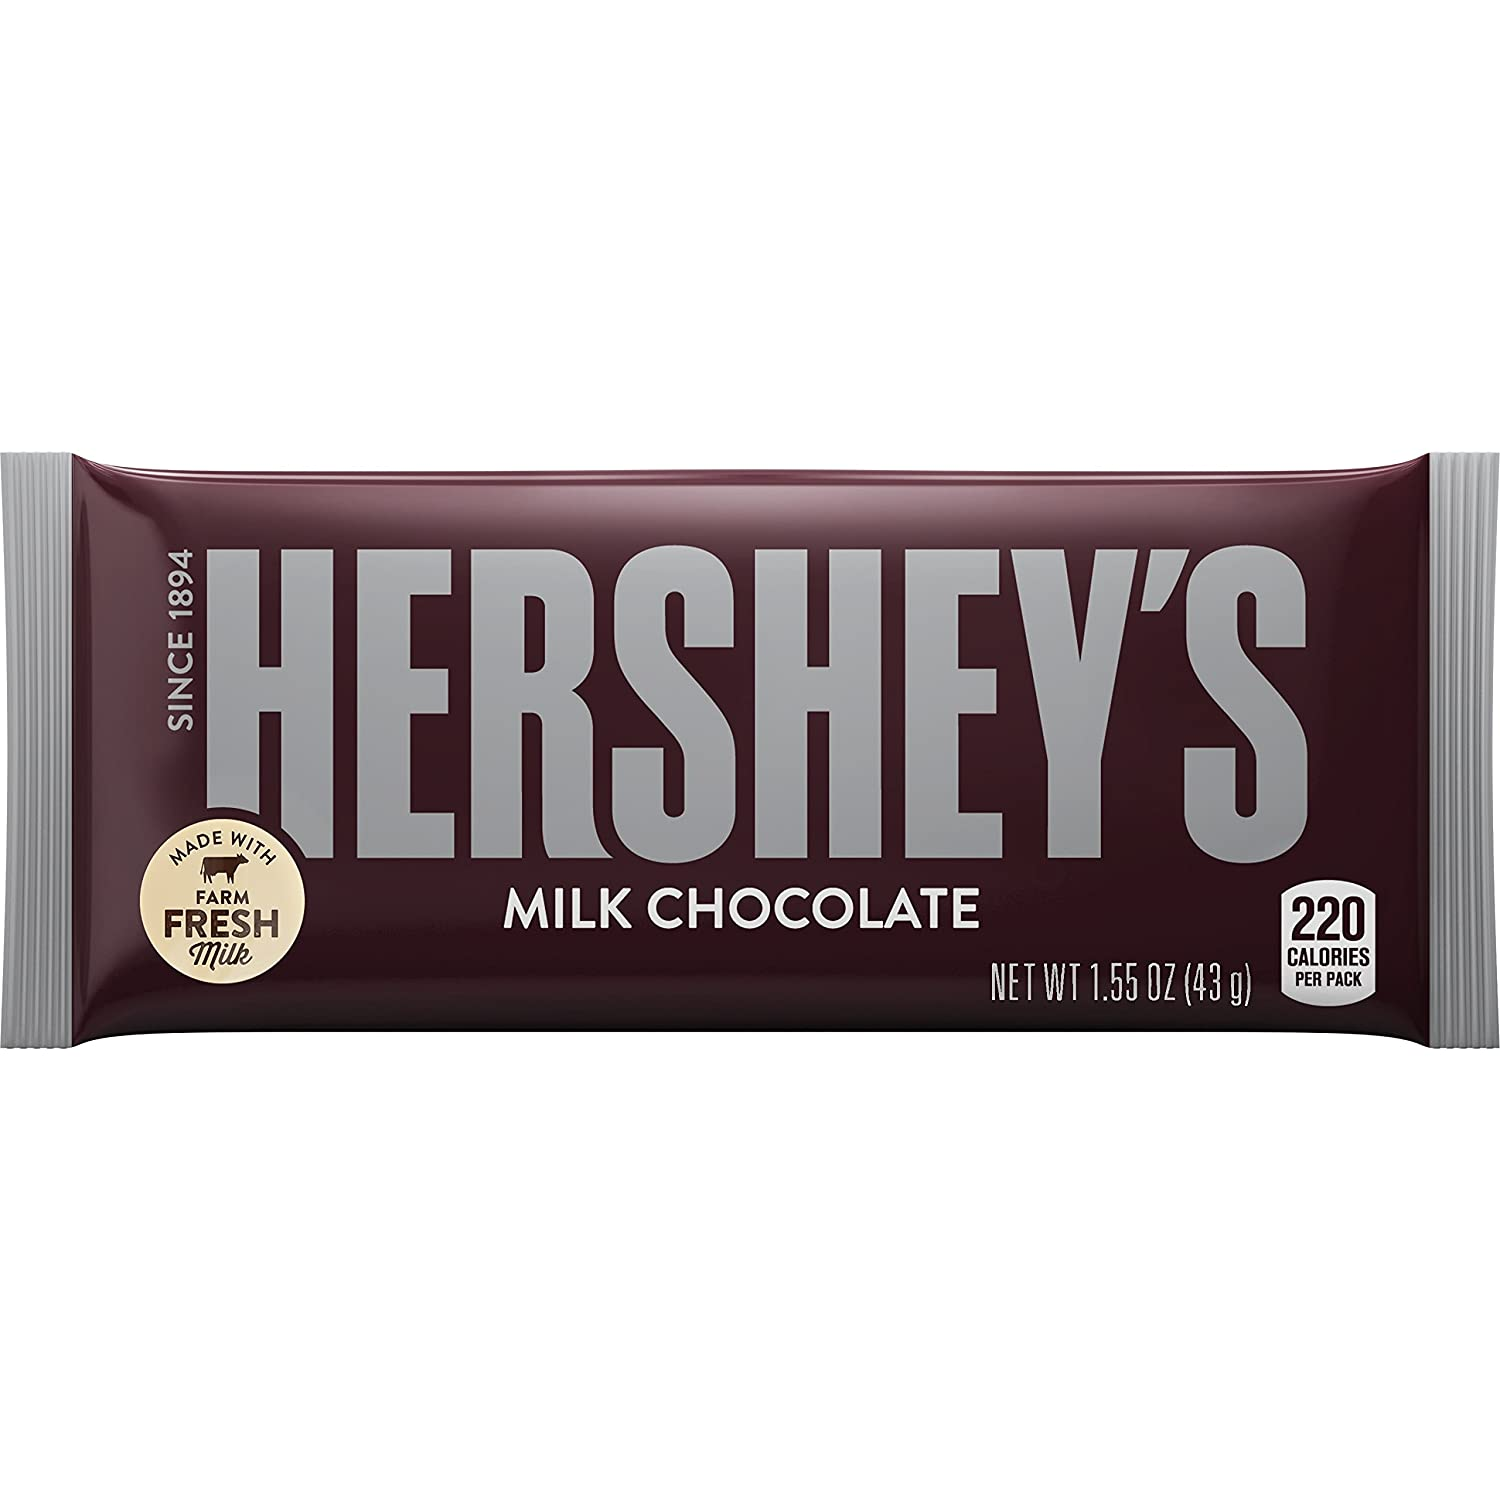 HERSHEY'S Milk Chocolate (Pack of 36)